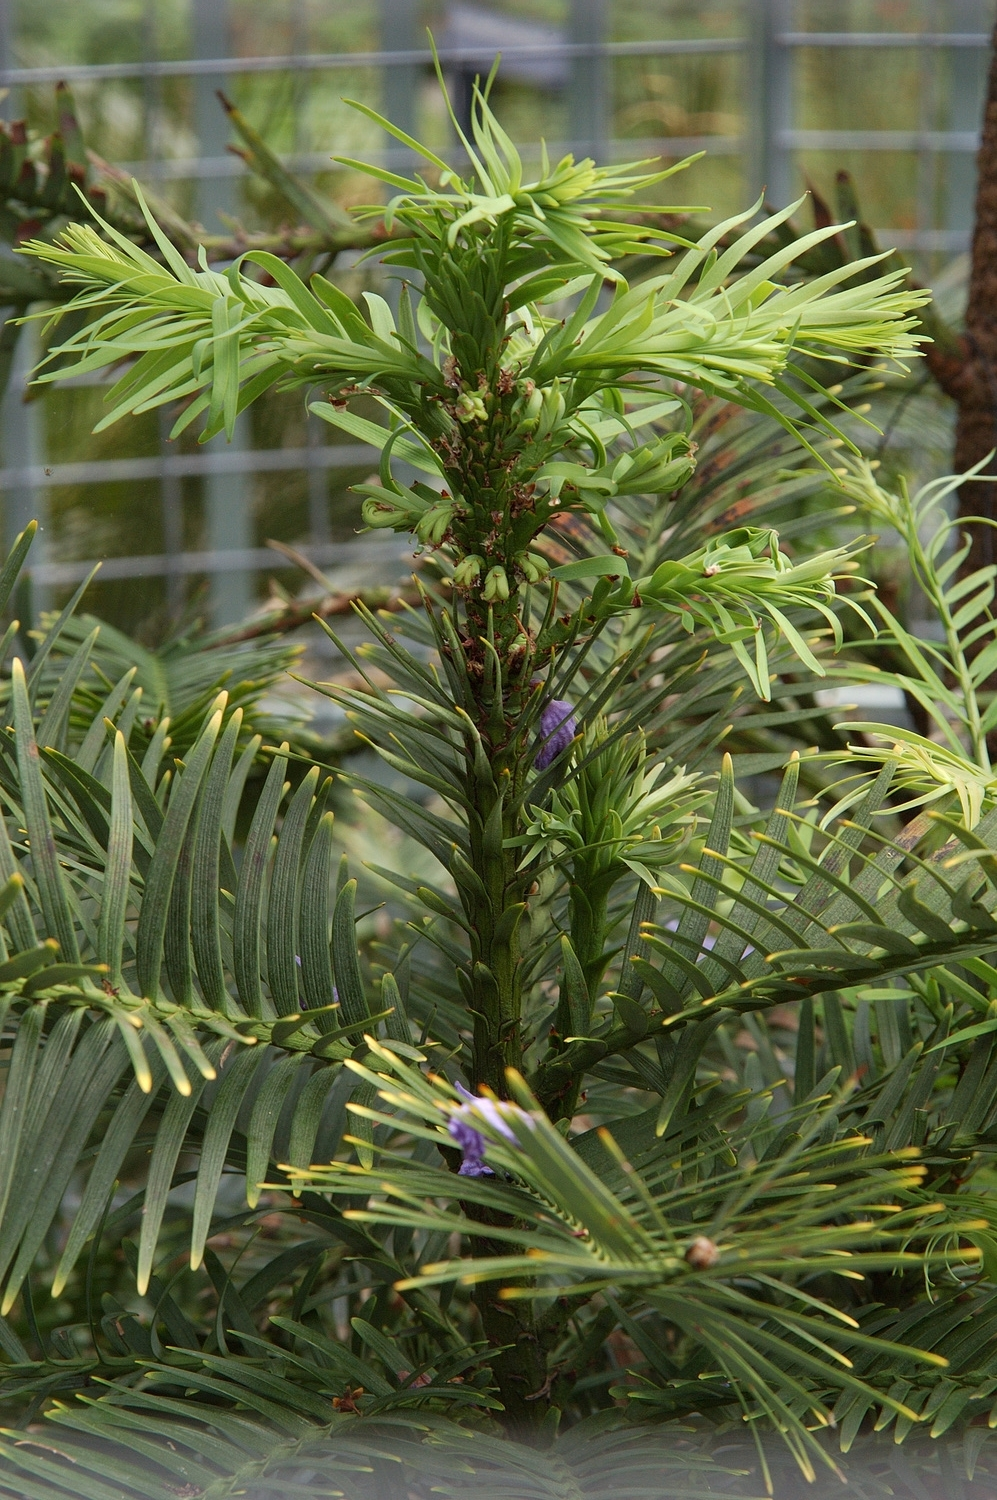 The Wolemi Pine